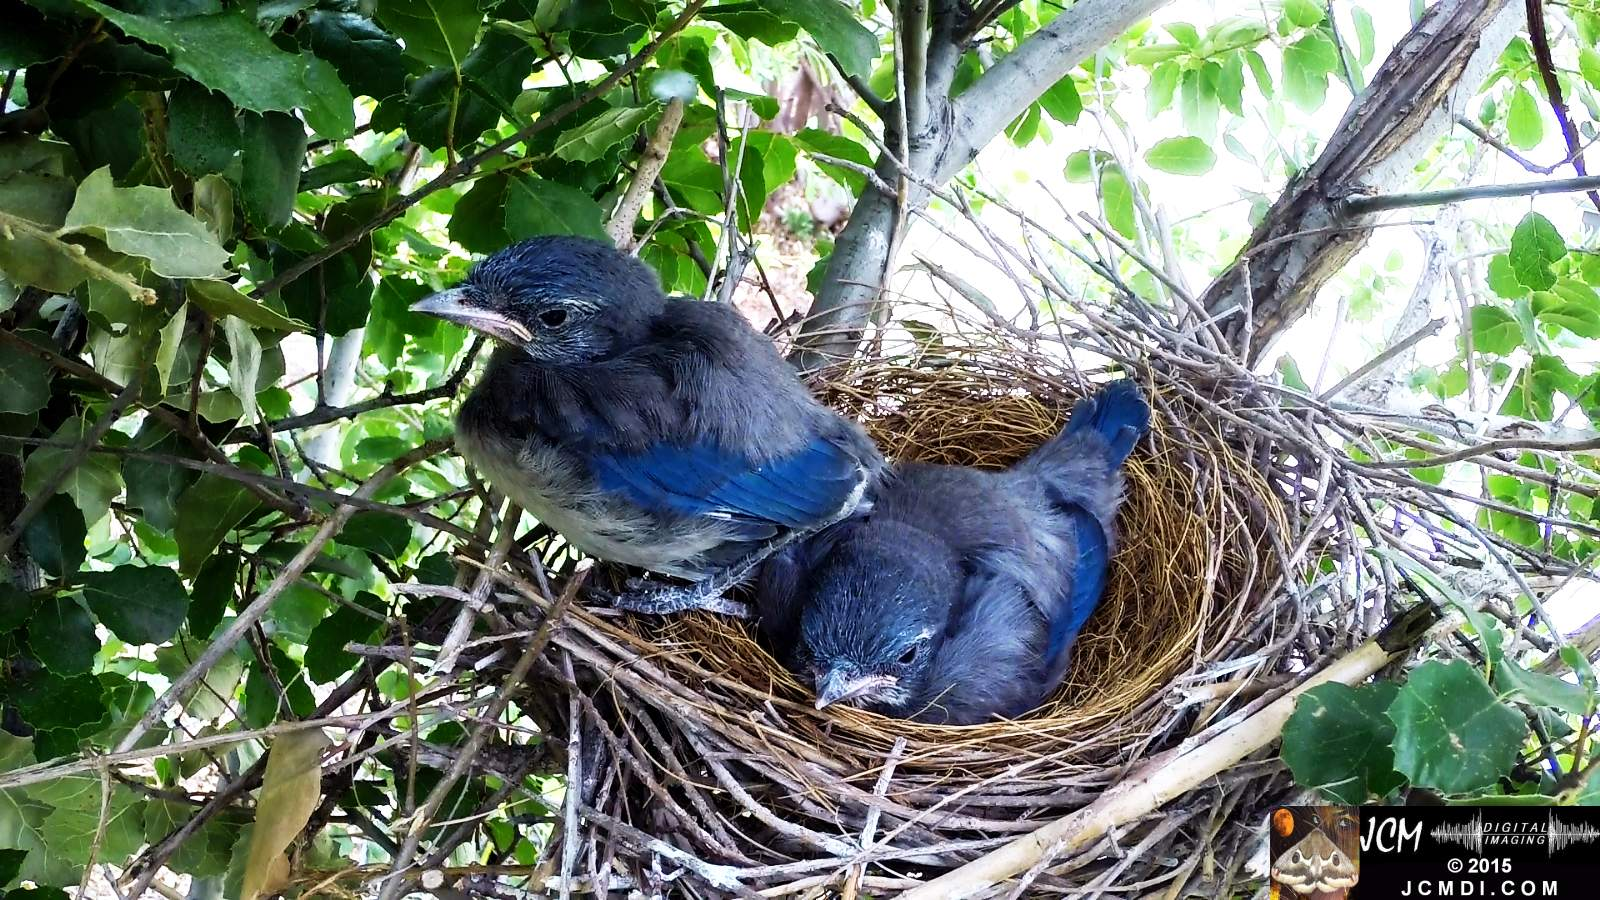 Scrub Jay Documentary chicls resting one standing on rim